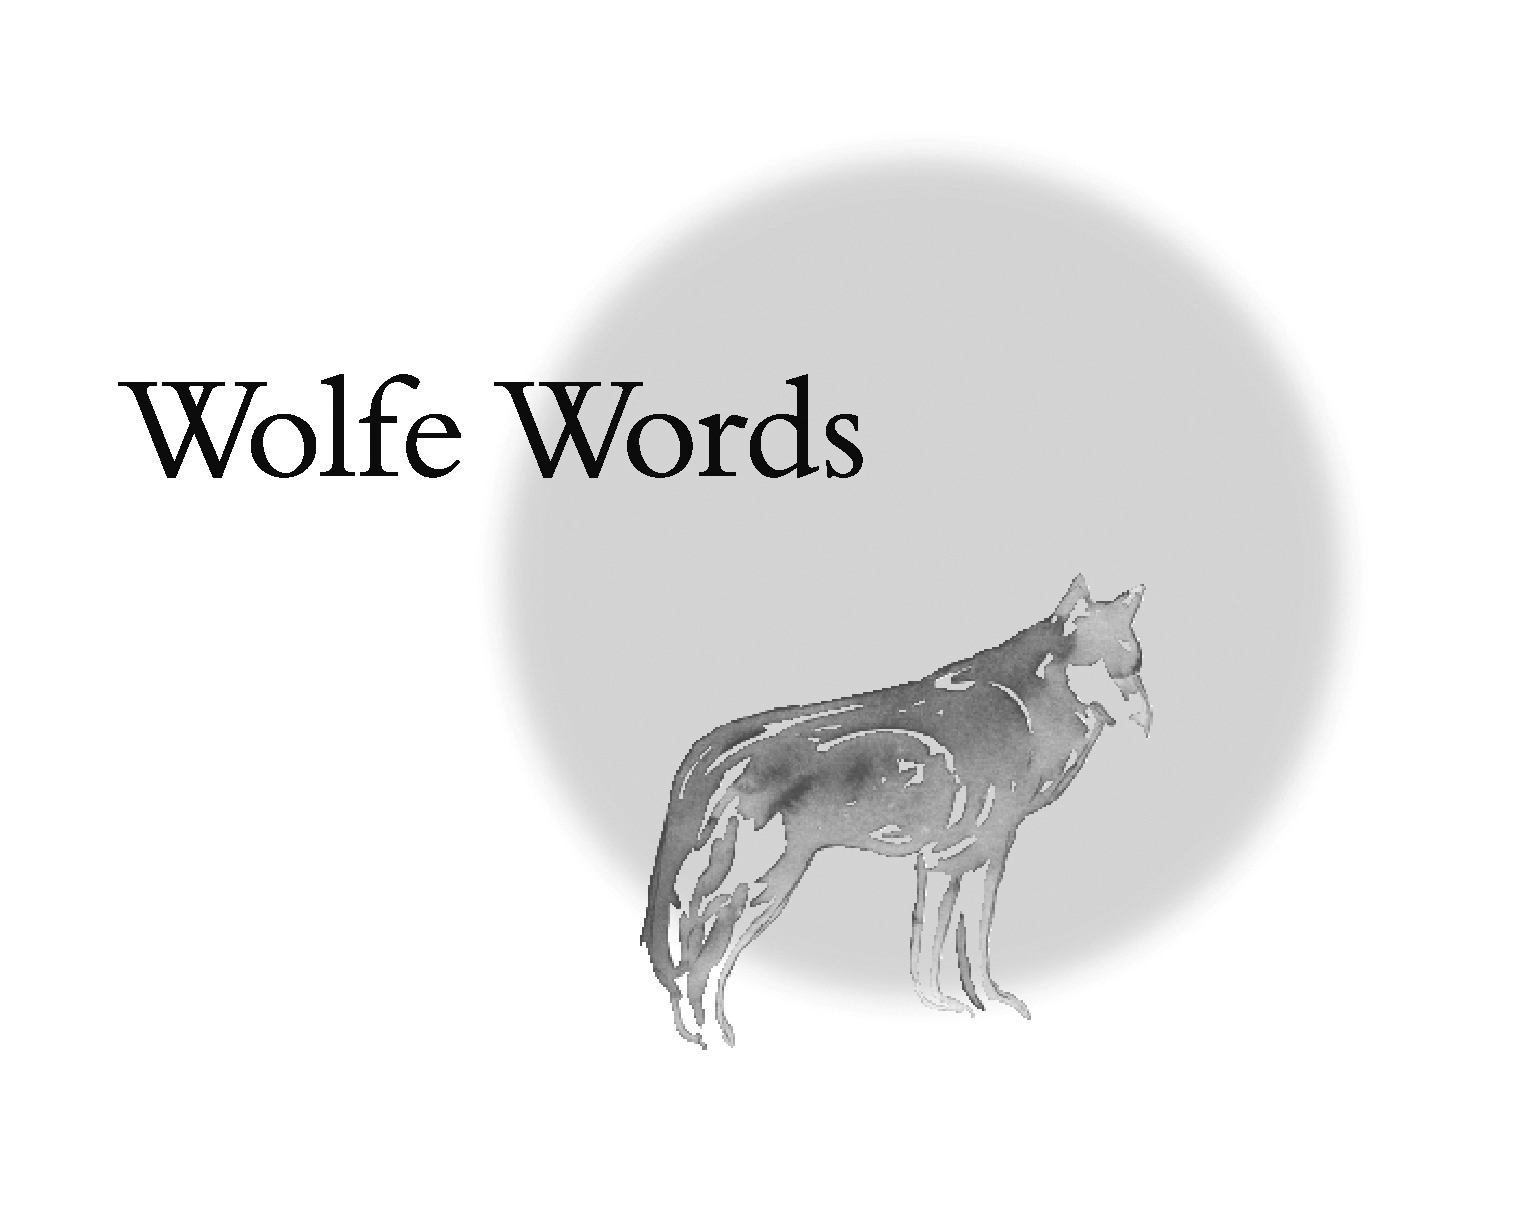 Wolfe words_BW.jpg